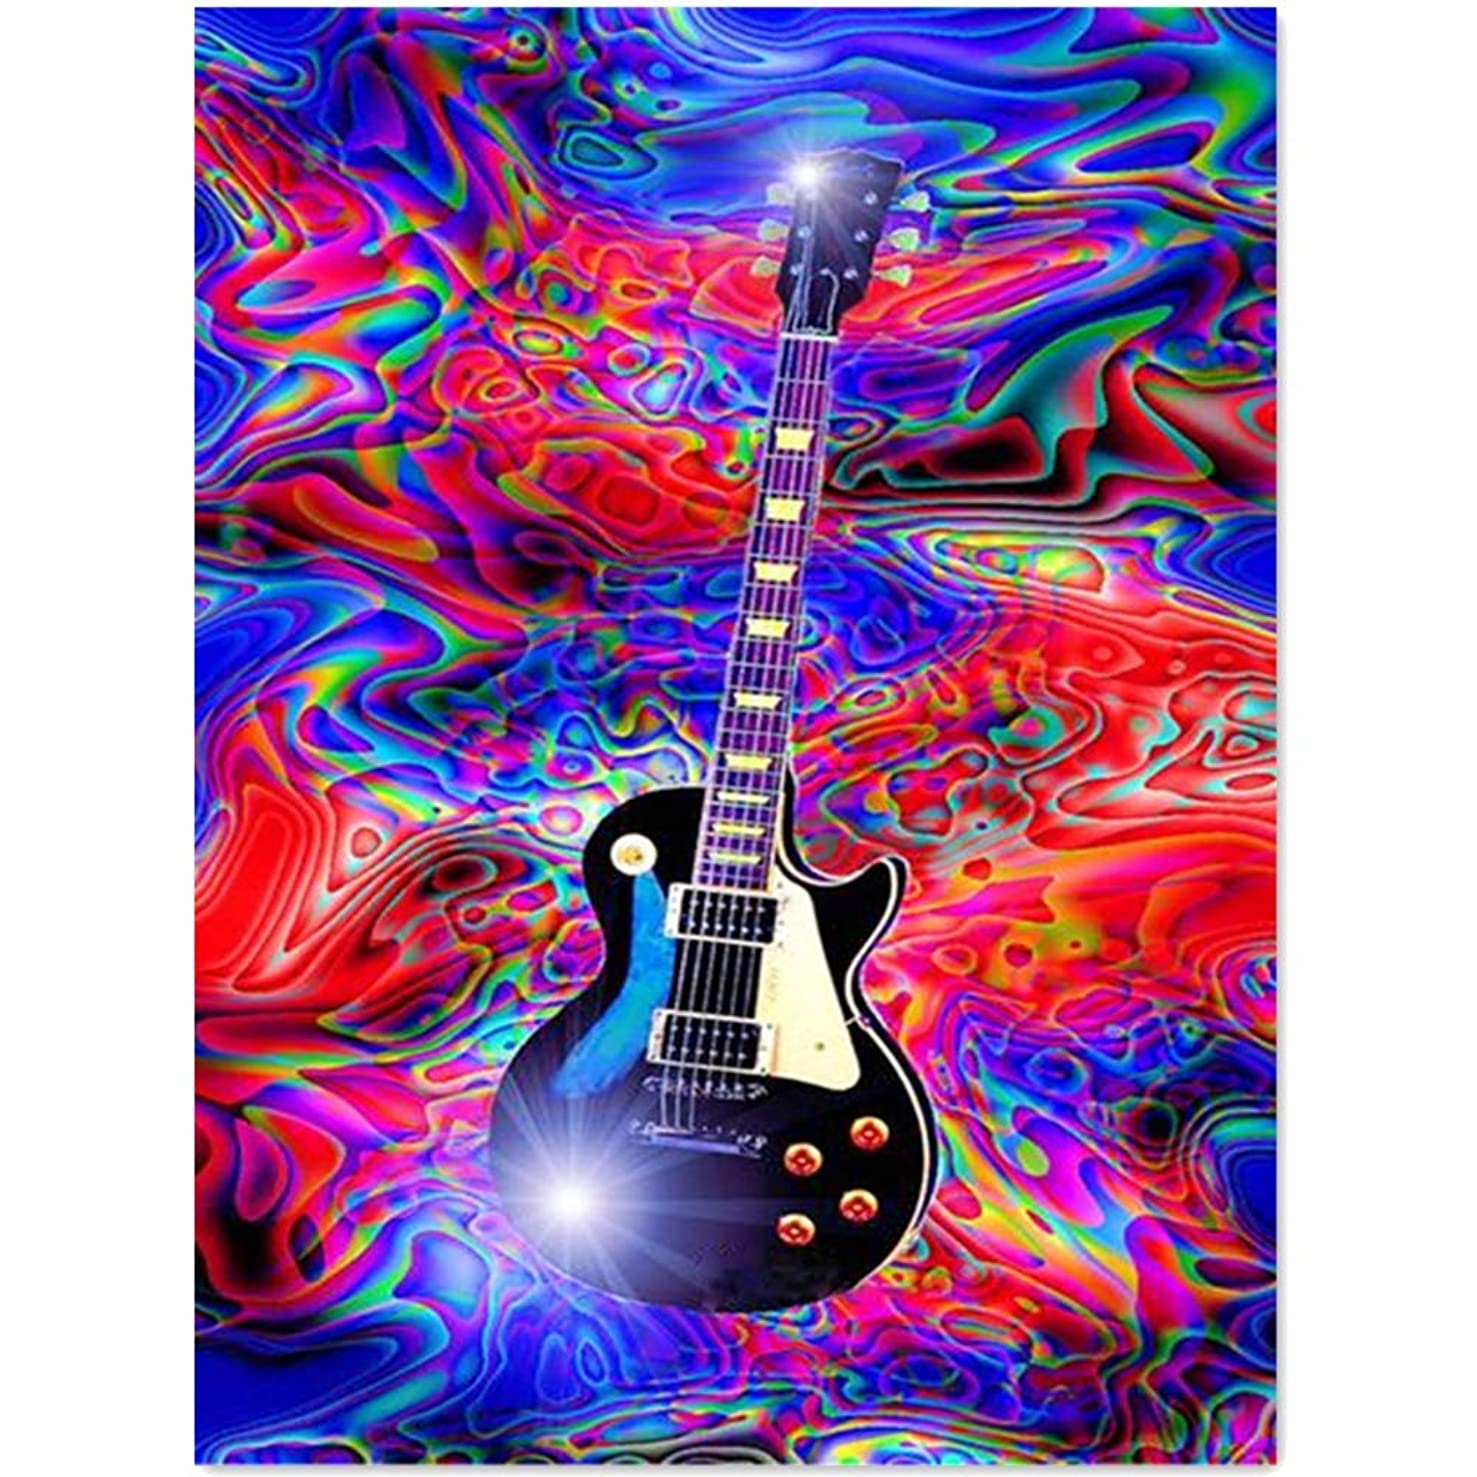 ShuoBeiter Full Drill 5D Diamond Painting Kits DIY Painting by Numbers for Adults Cross Stitch Embroidery Arts 30X40cm (Guitar)